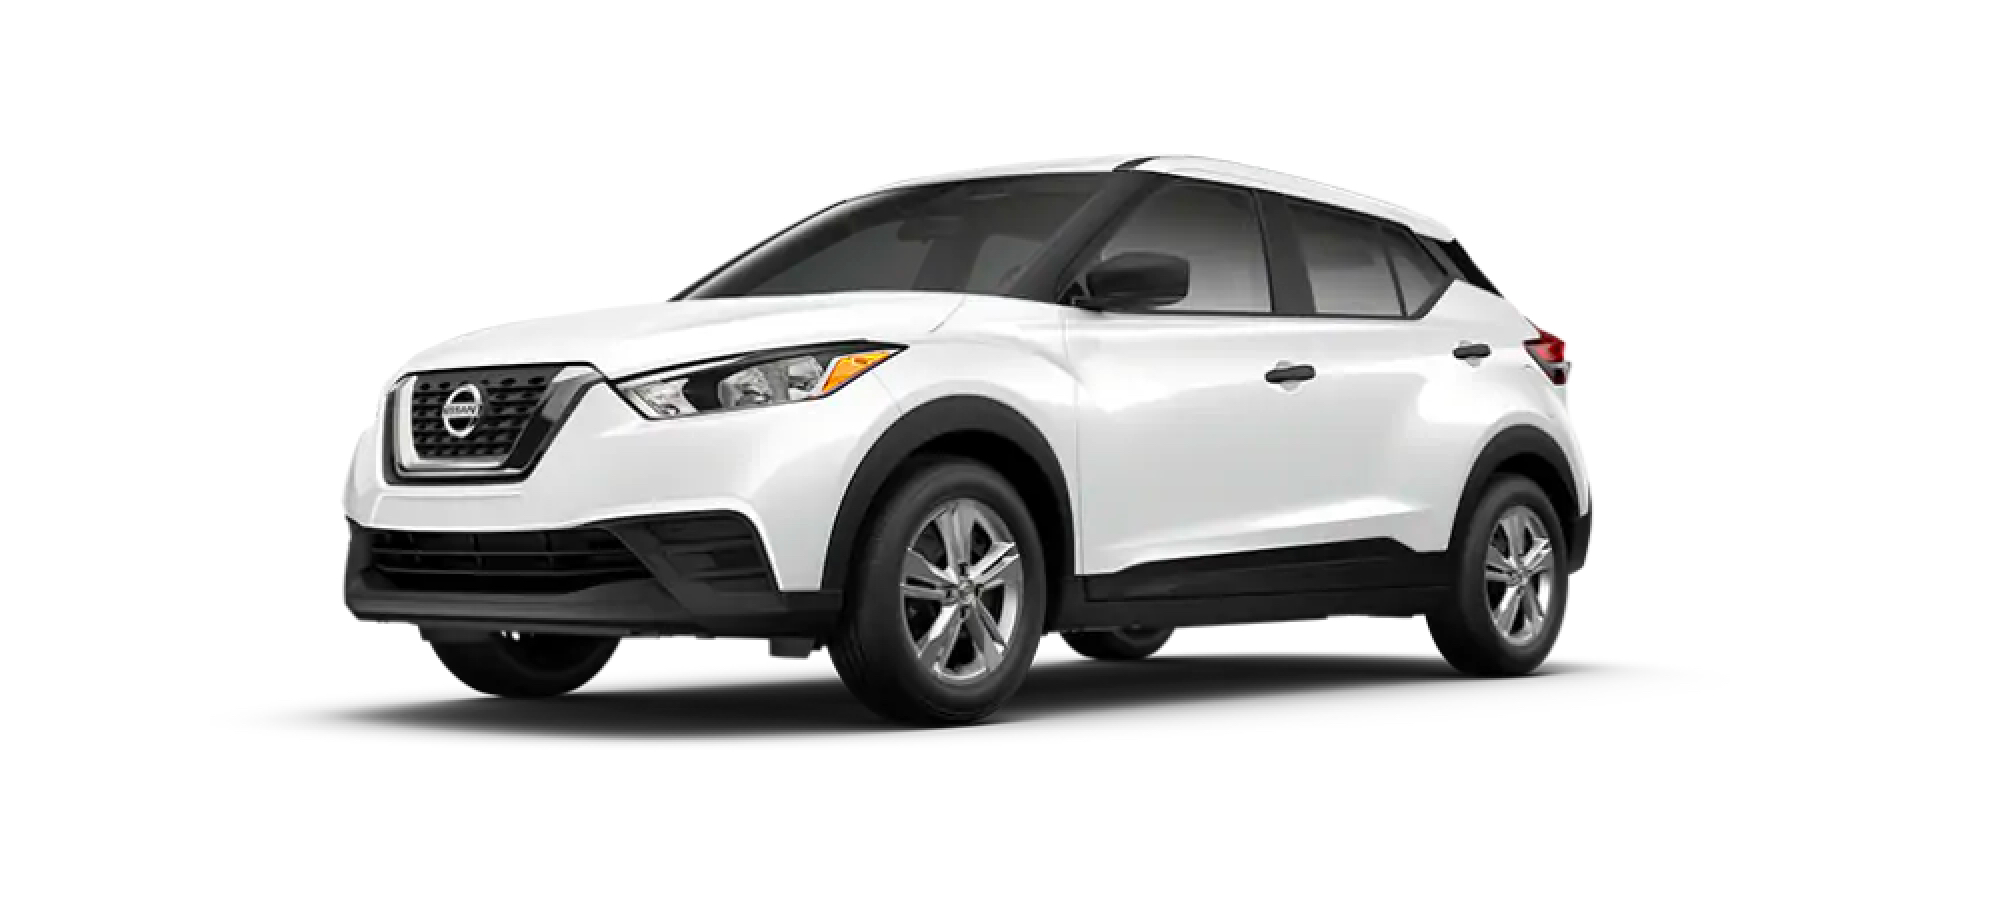 Fresh Powder Nissan Kicks